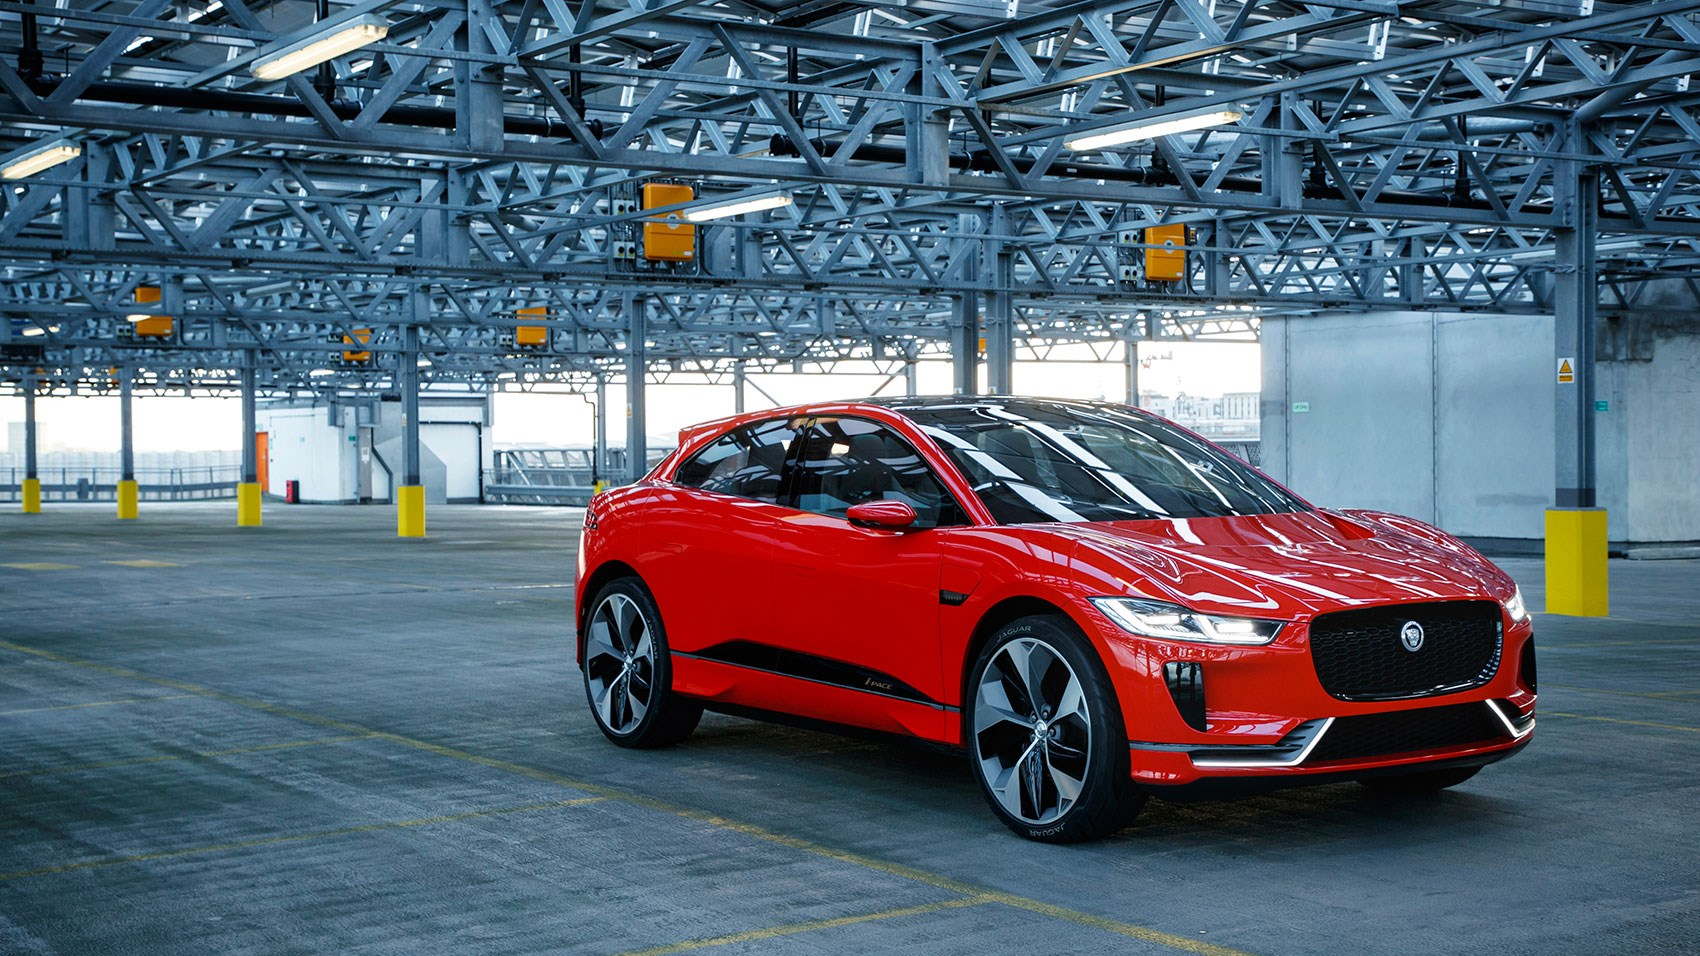 Jaguar i-Pace EV: here in 2018